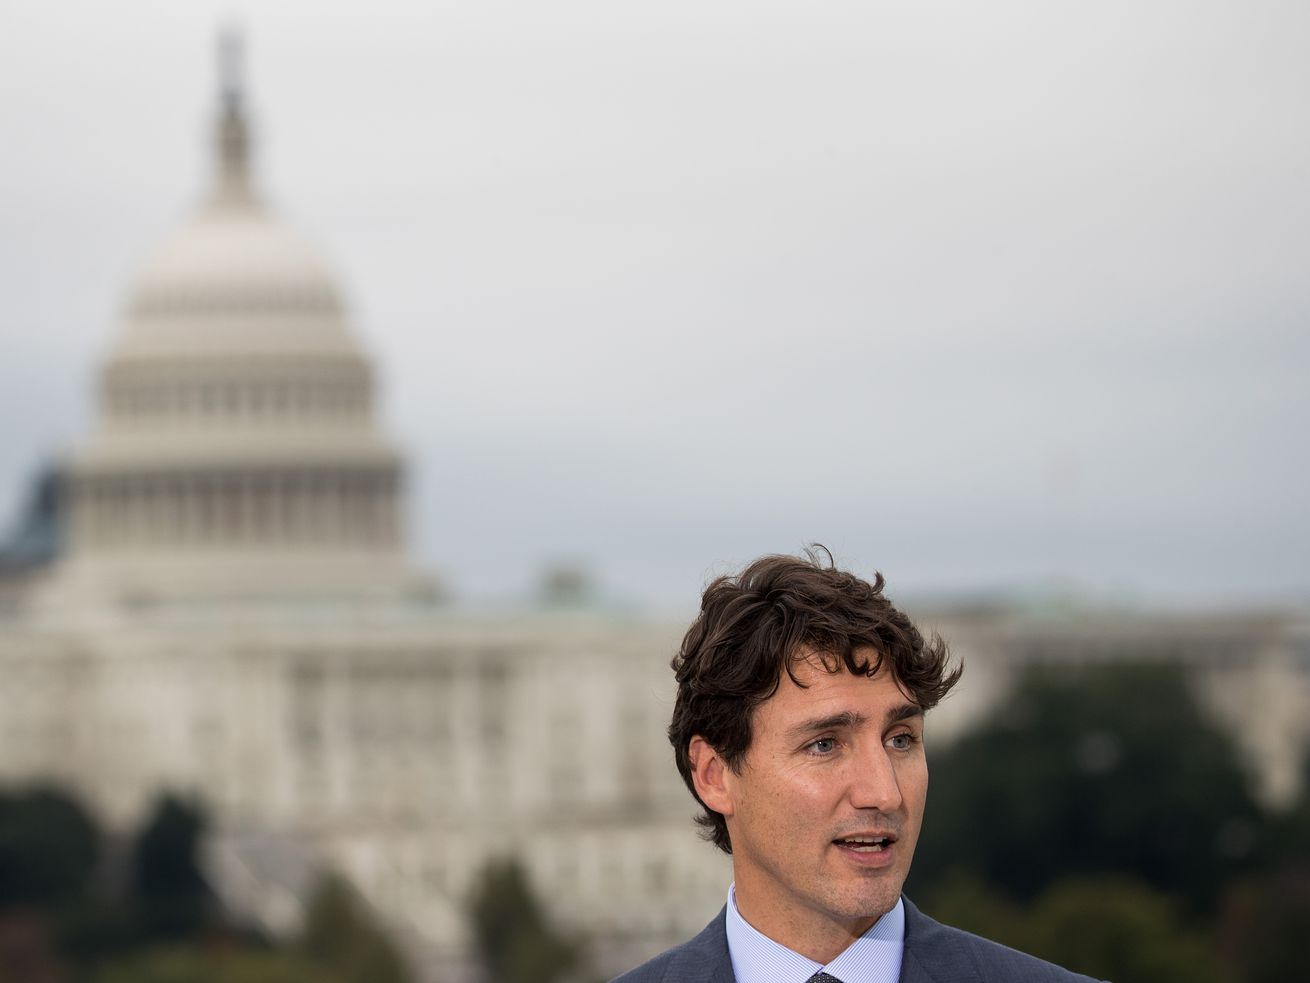 Canadian Prime Minister Justin Trudeau in Washington, DC, in 2017.